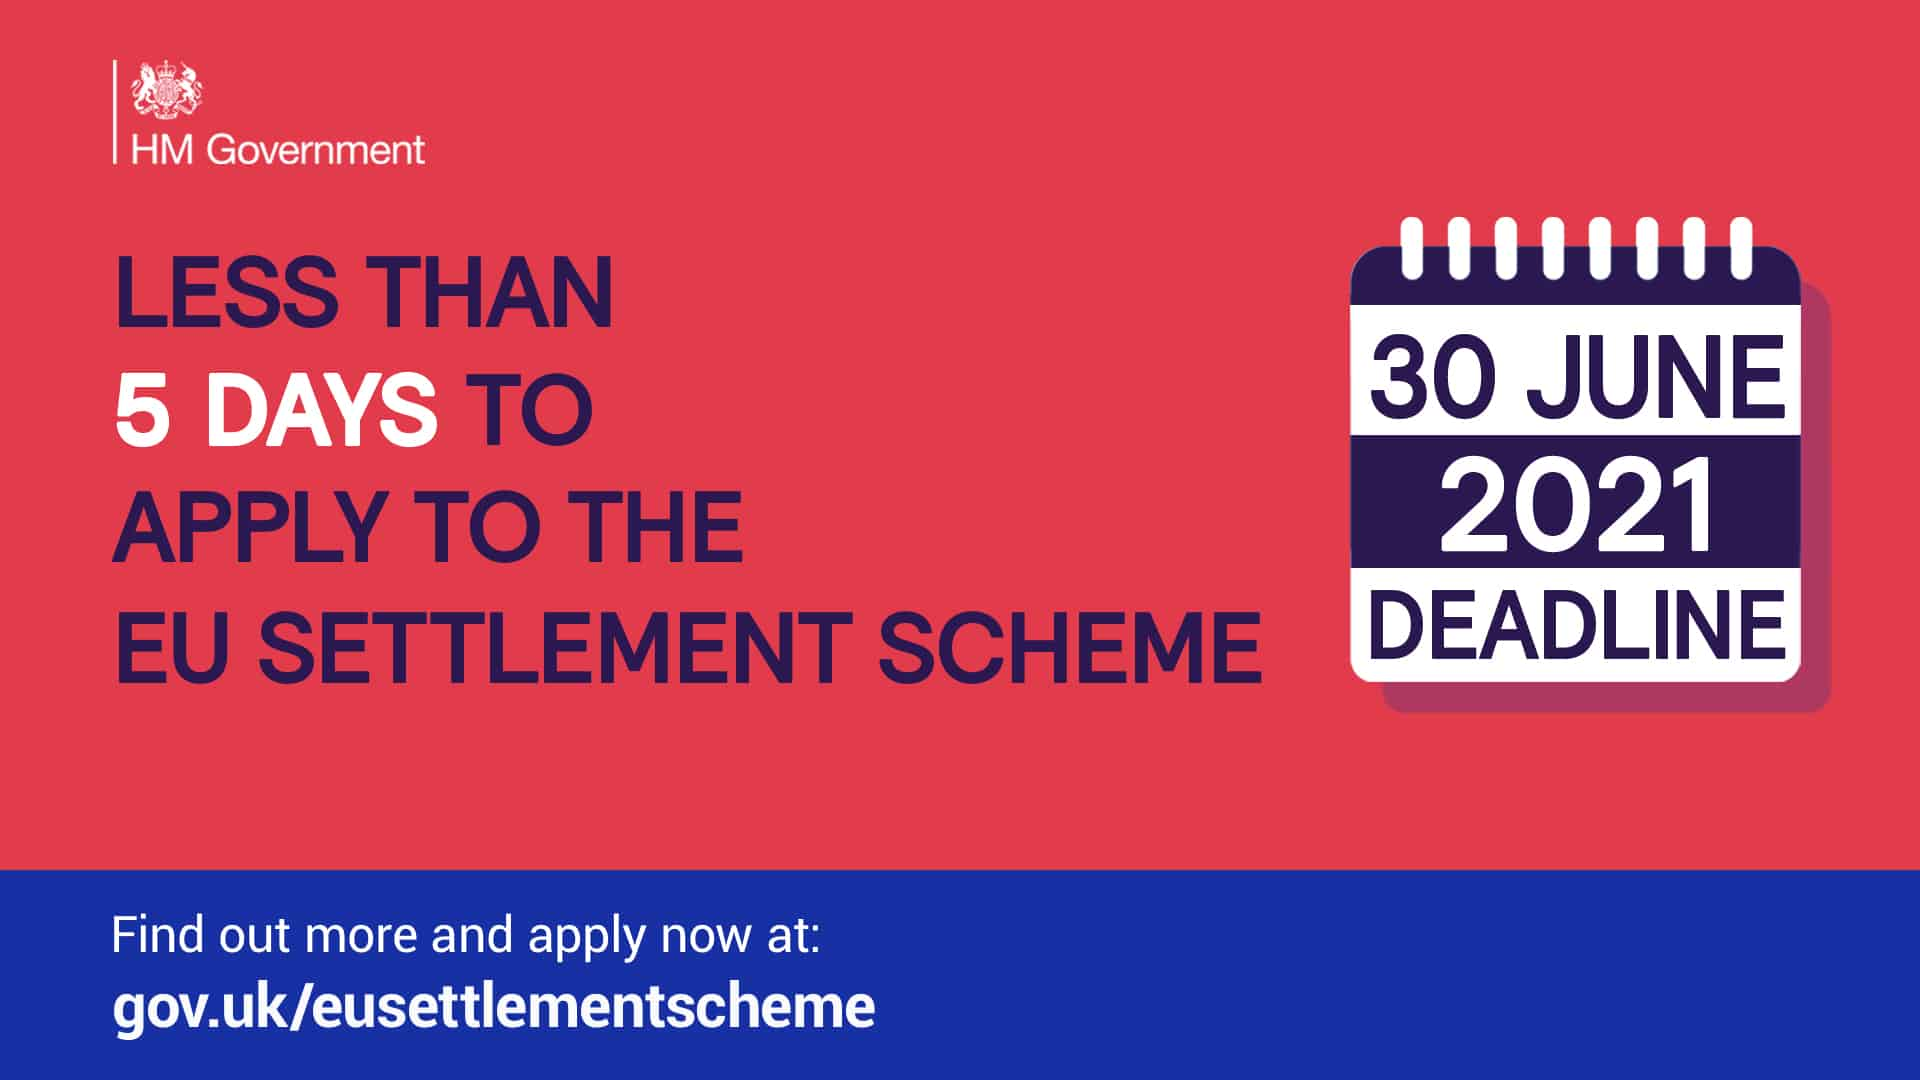 """Poster - """"Less than 5 days to apply to the EU Settlement Scheme - 30 June 2021 deadline. Find out more and apply now at gov.uk/eusettlementscheme"""""""